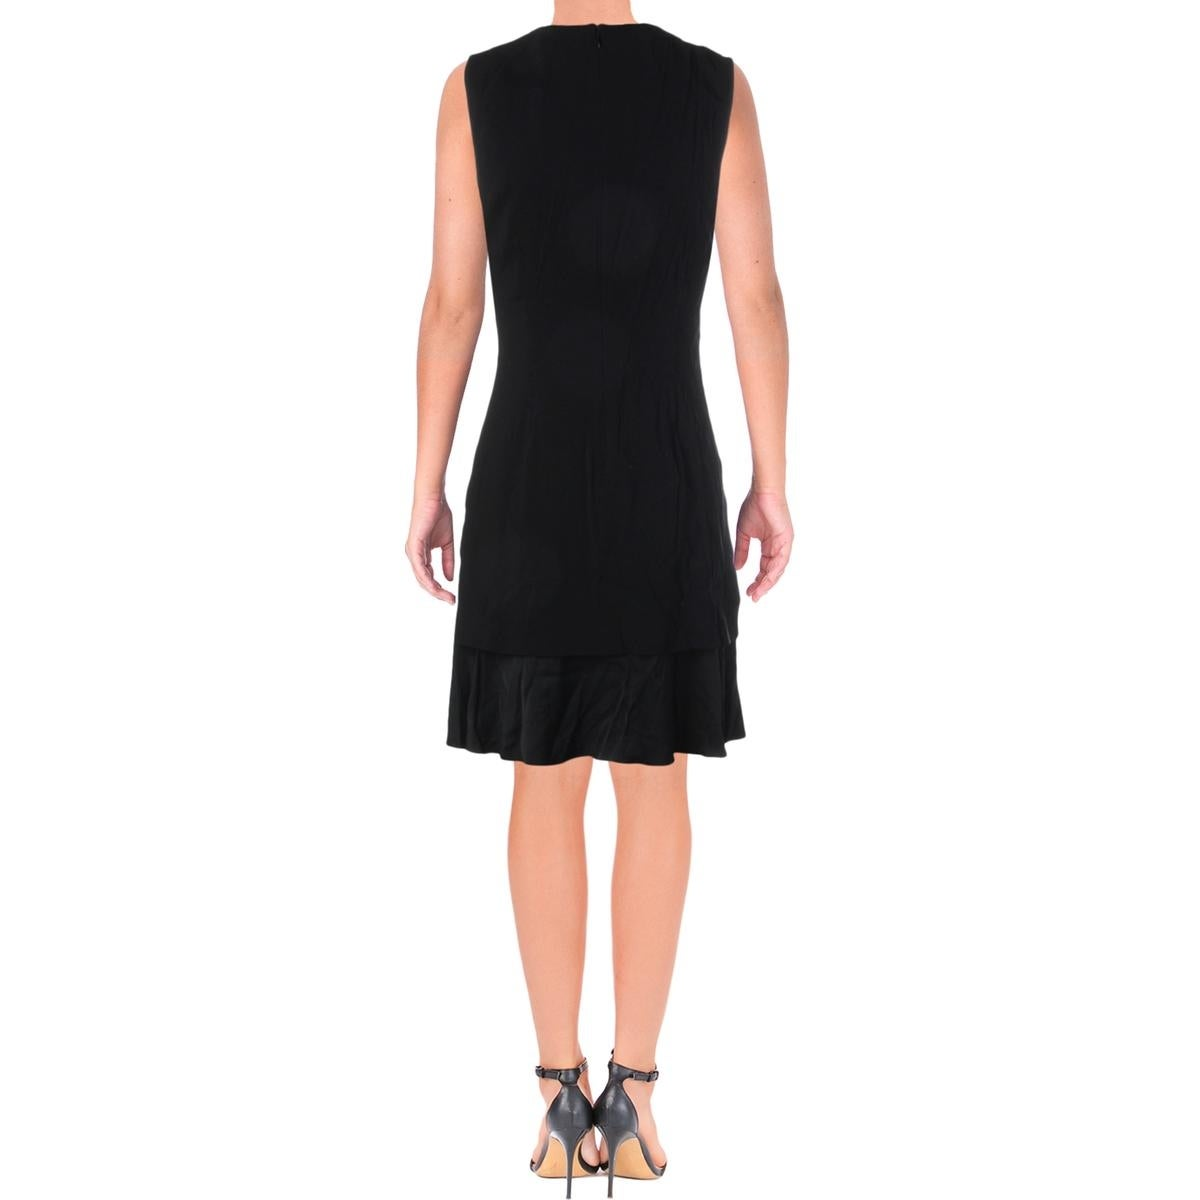 5bbc13365b Shop Theory Womens Malkan Wear to Work Dress Sateen Sleeveless - Free  Shipping Today - Overstock - 20904758